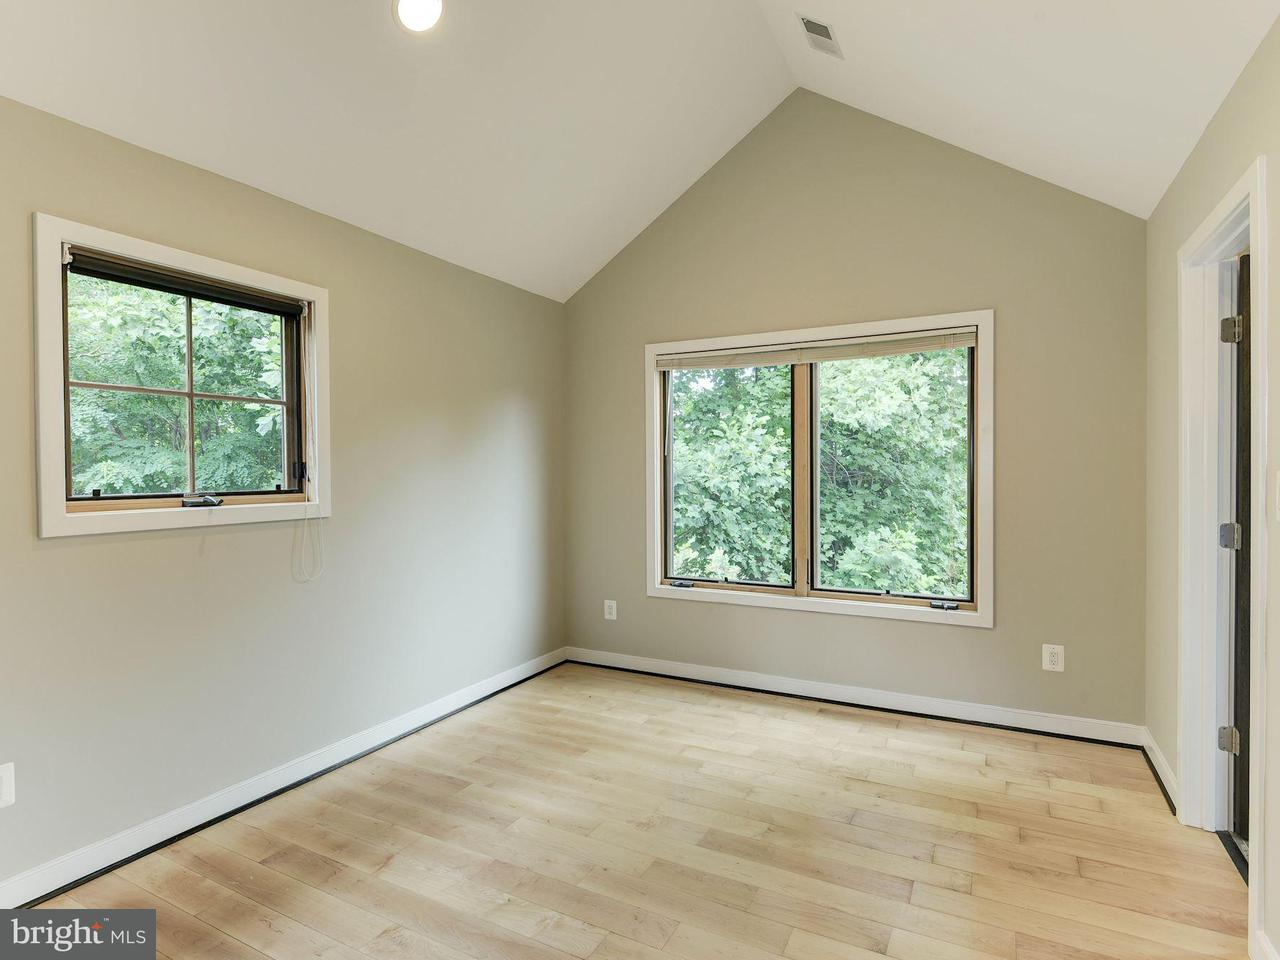 Additional photo for property listing at 314 Lee Street 314 Lee Street Falls Church, Virginia 22046 Stati Uniti